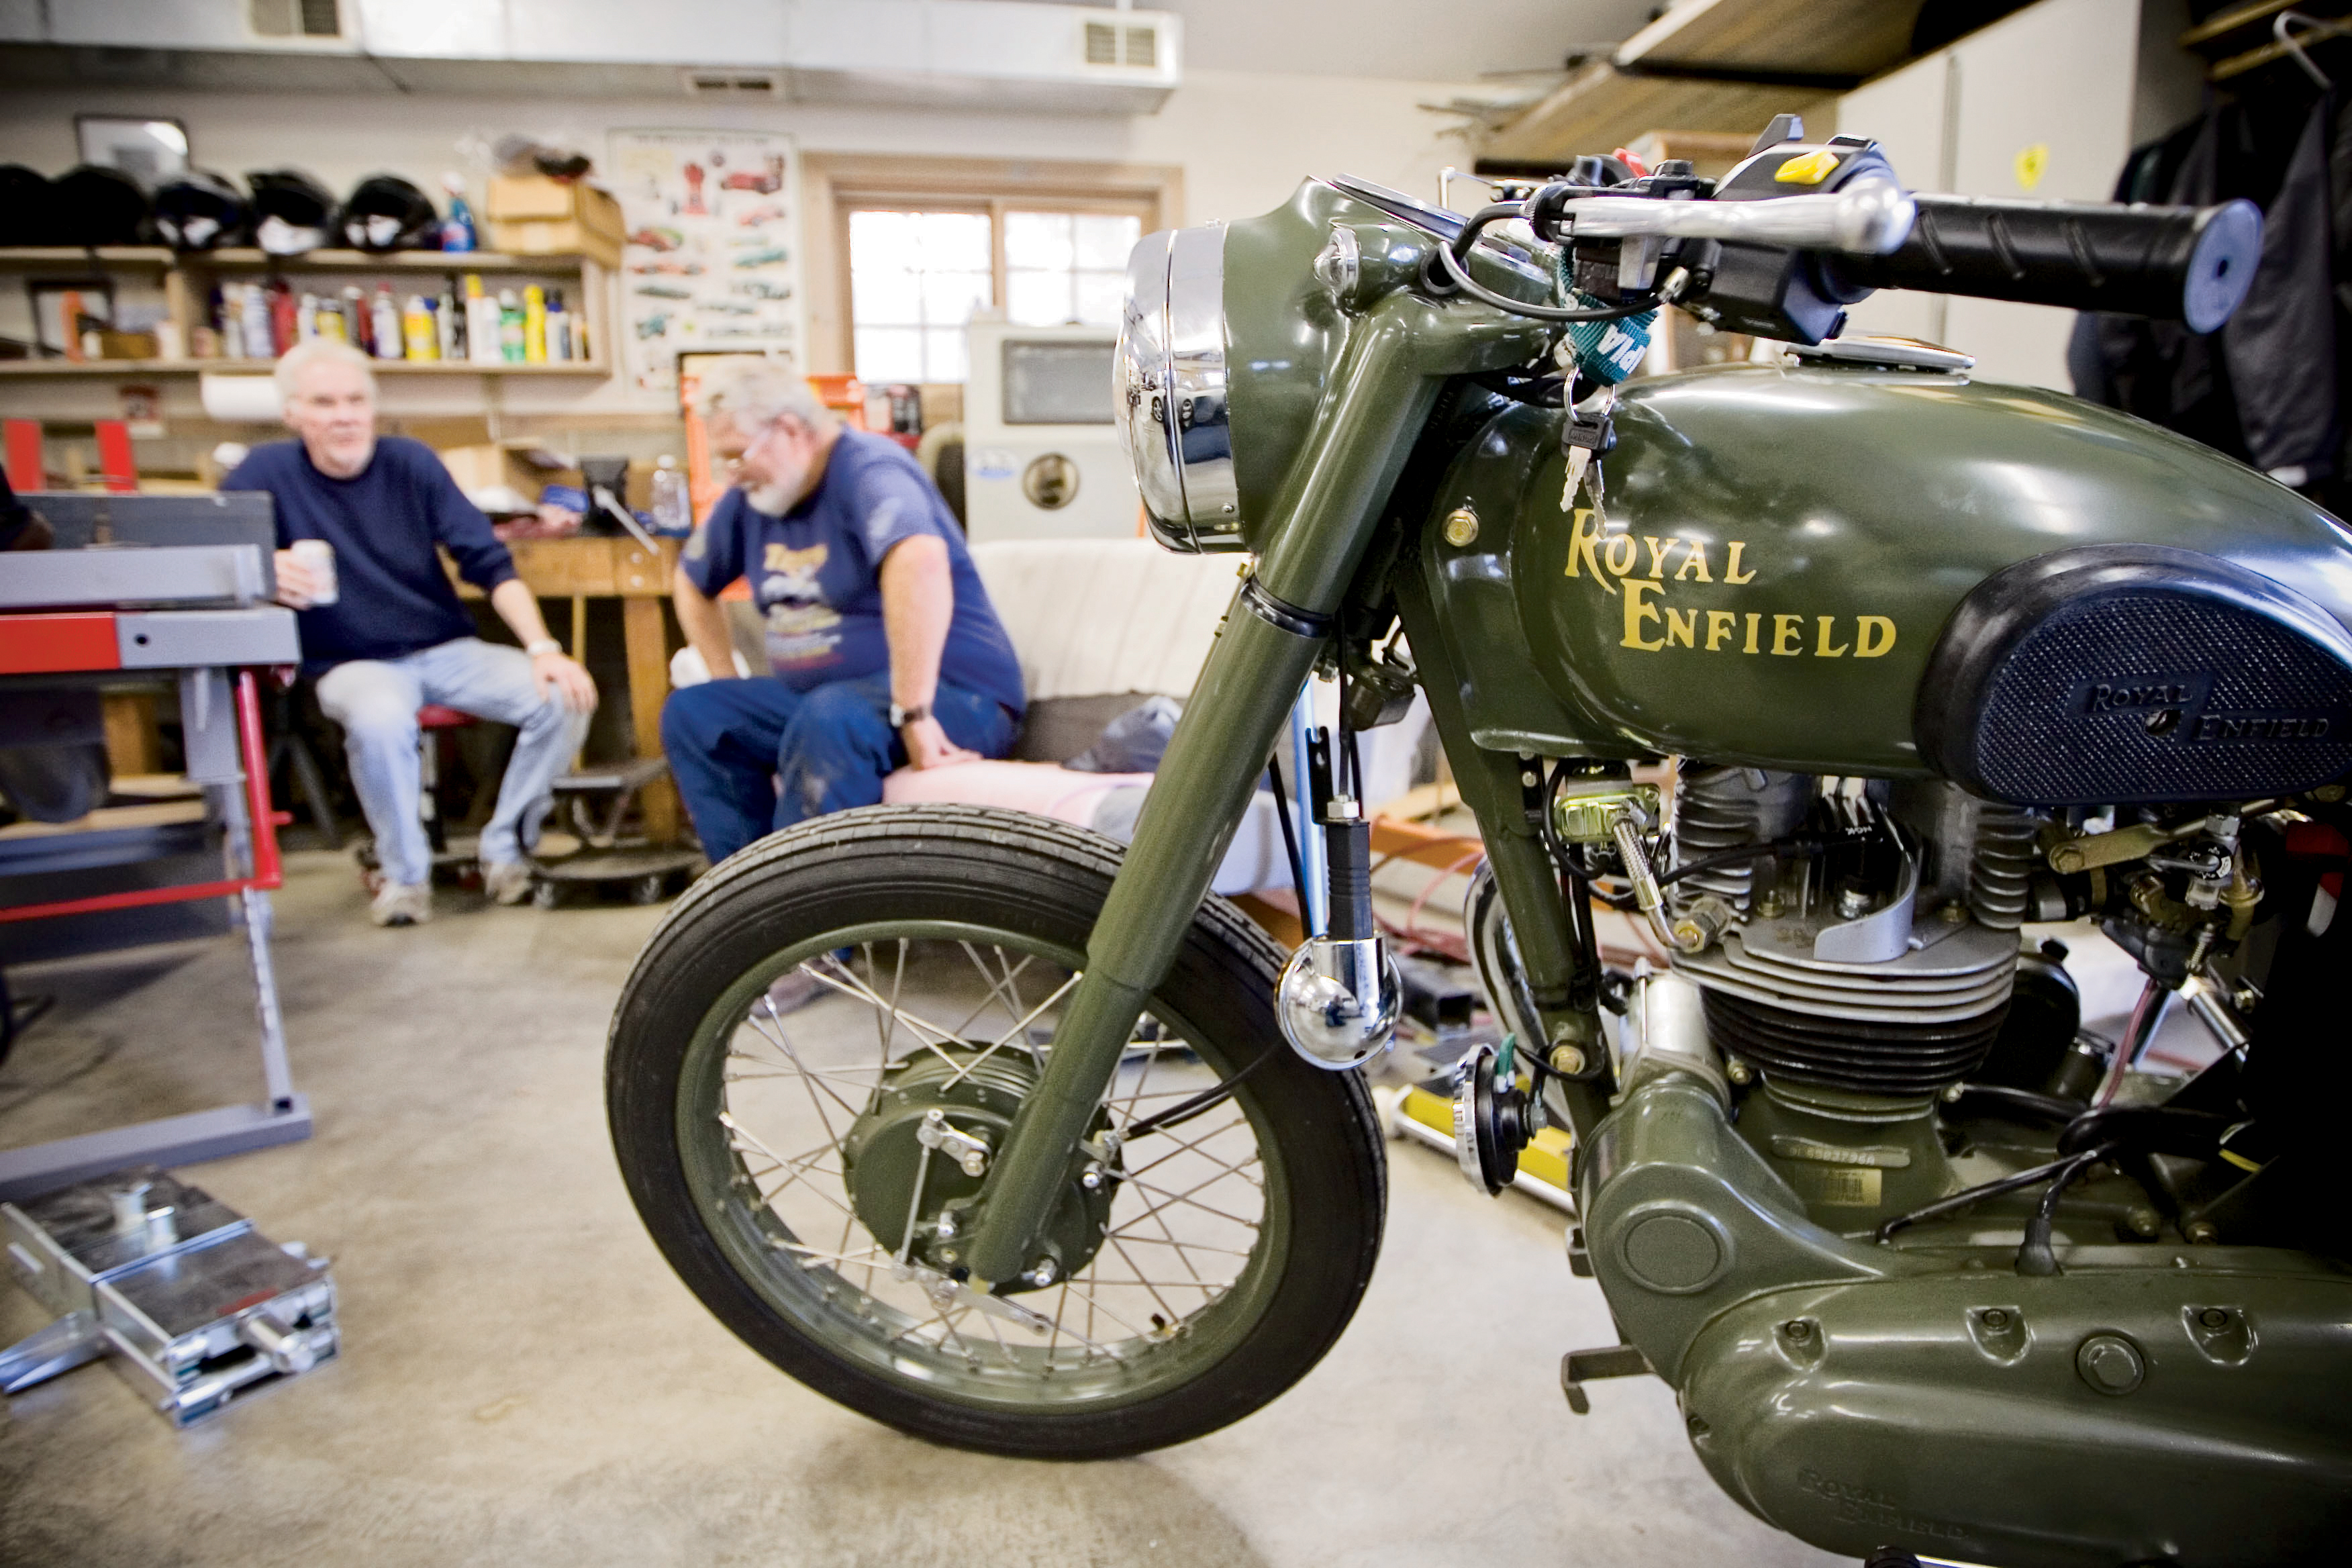 Royal Enfield Bullet 500 Military Motorcycle Test Ride Cycle World